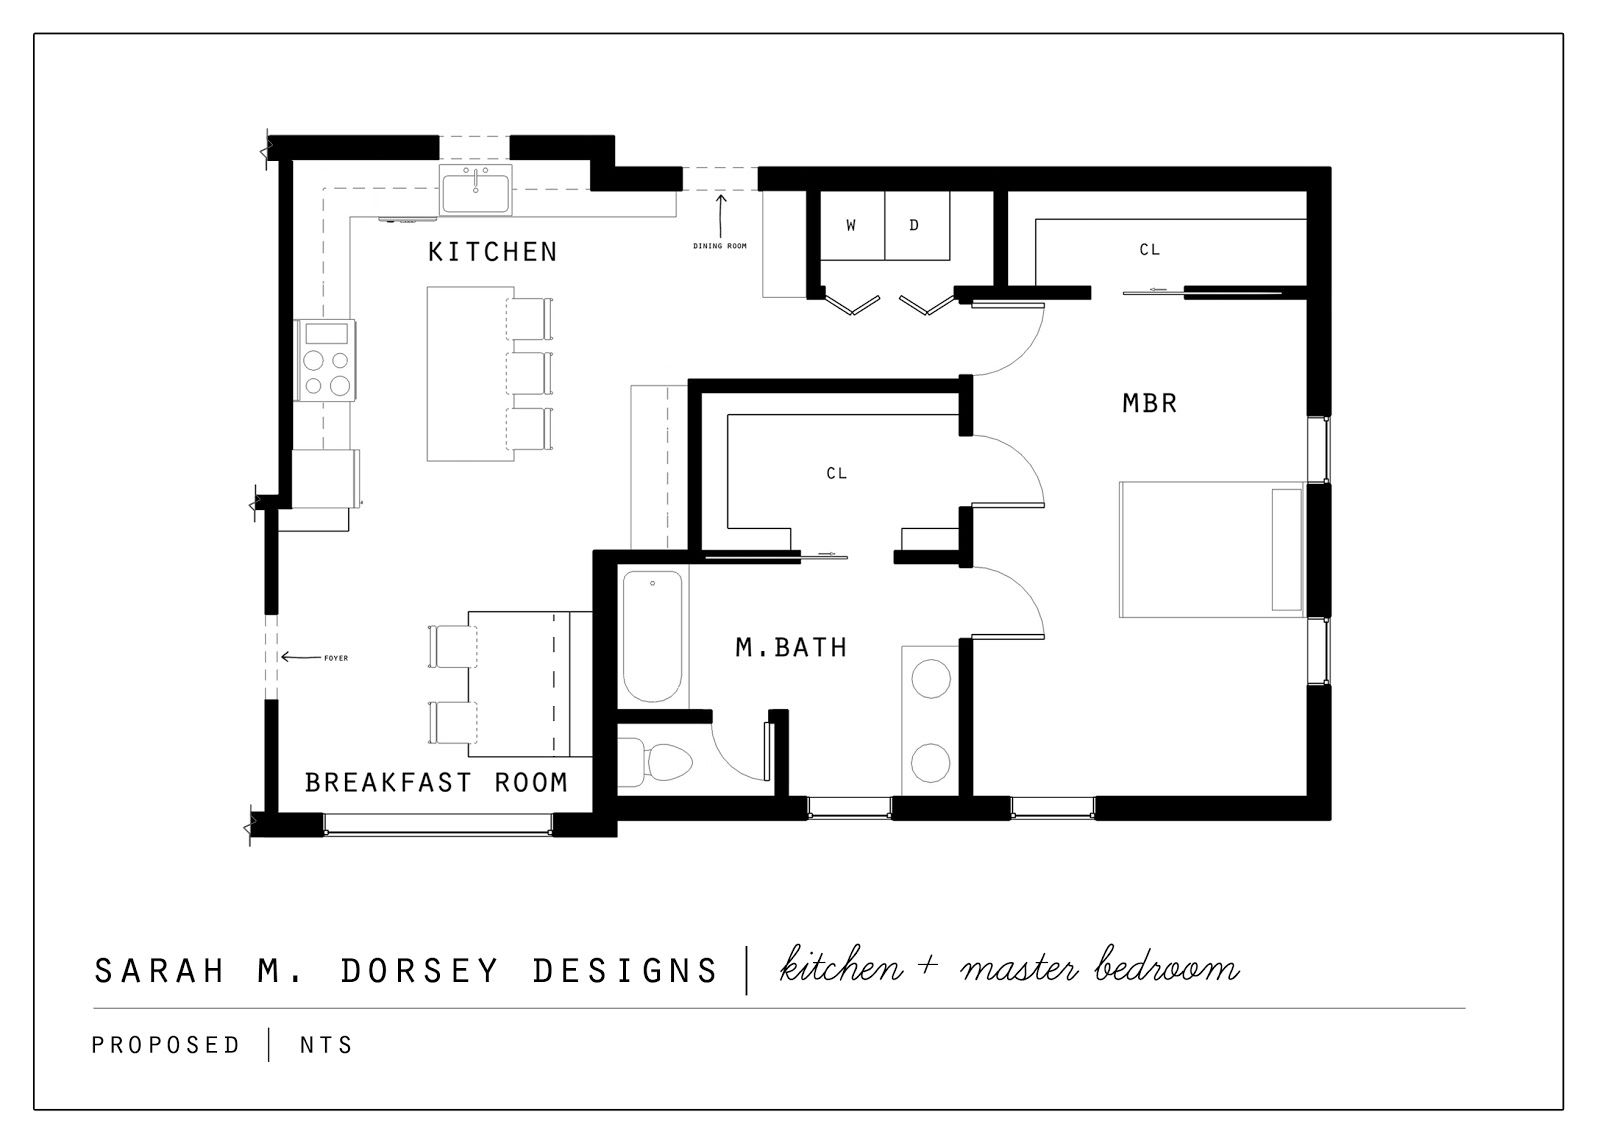 Floor plans for master bedroom additions bedroom Bedroom addition floor plans